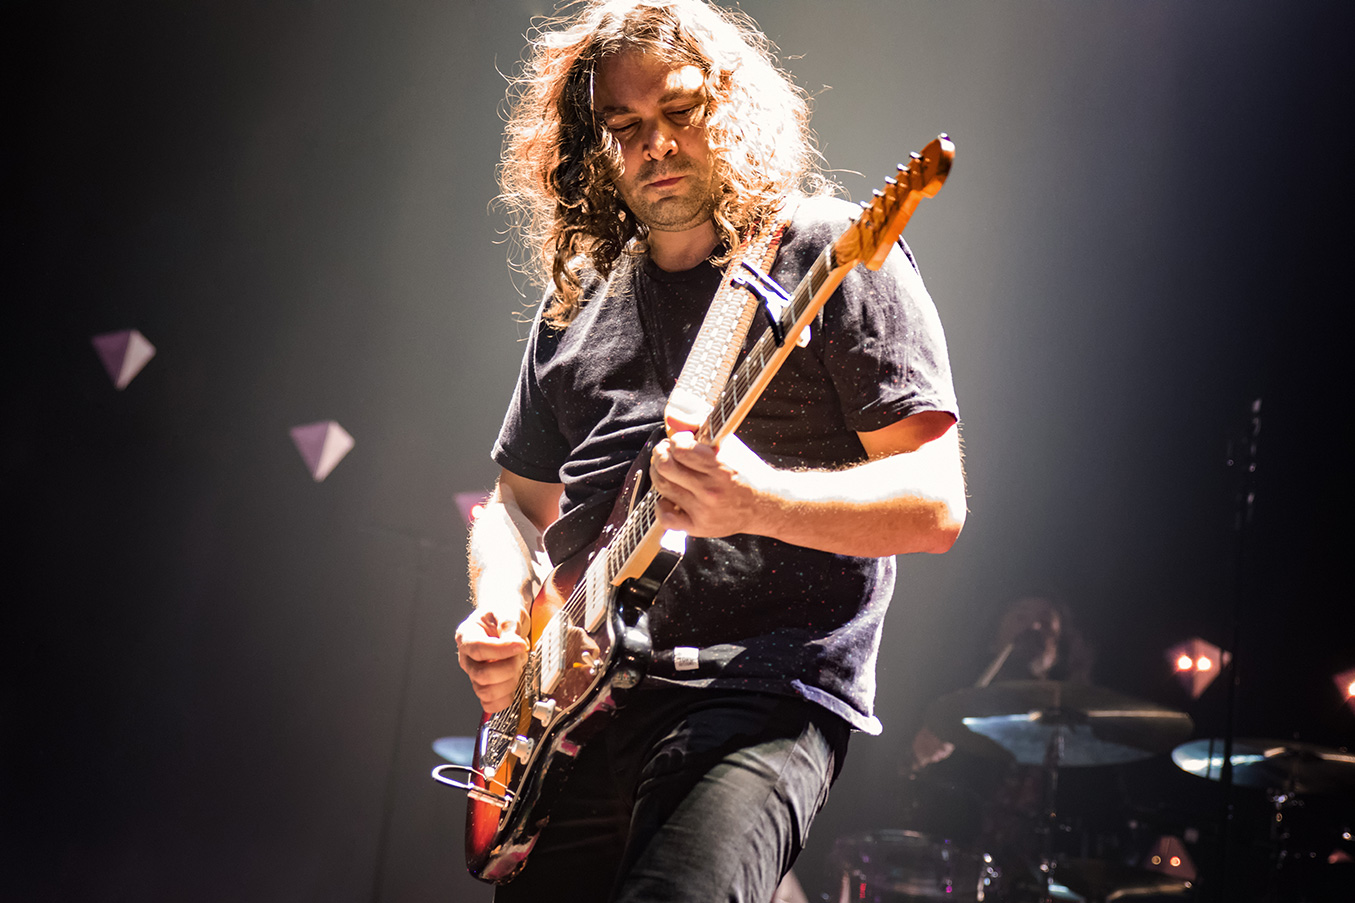 The War On Drugs live at Verti Music Hall by Yvonne Hartmann